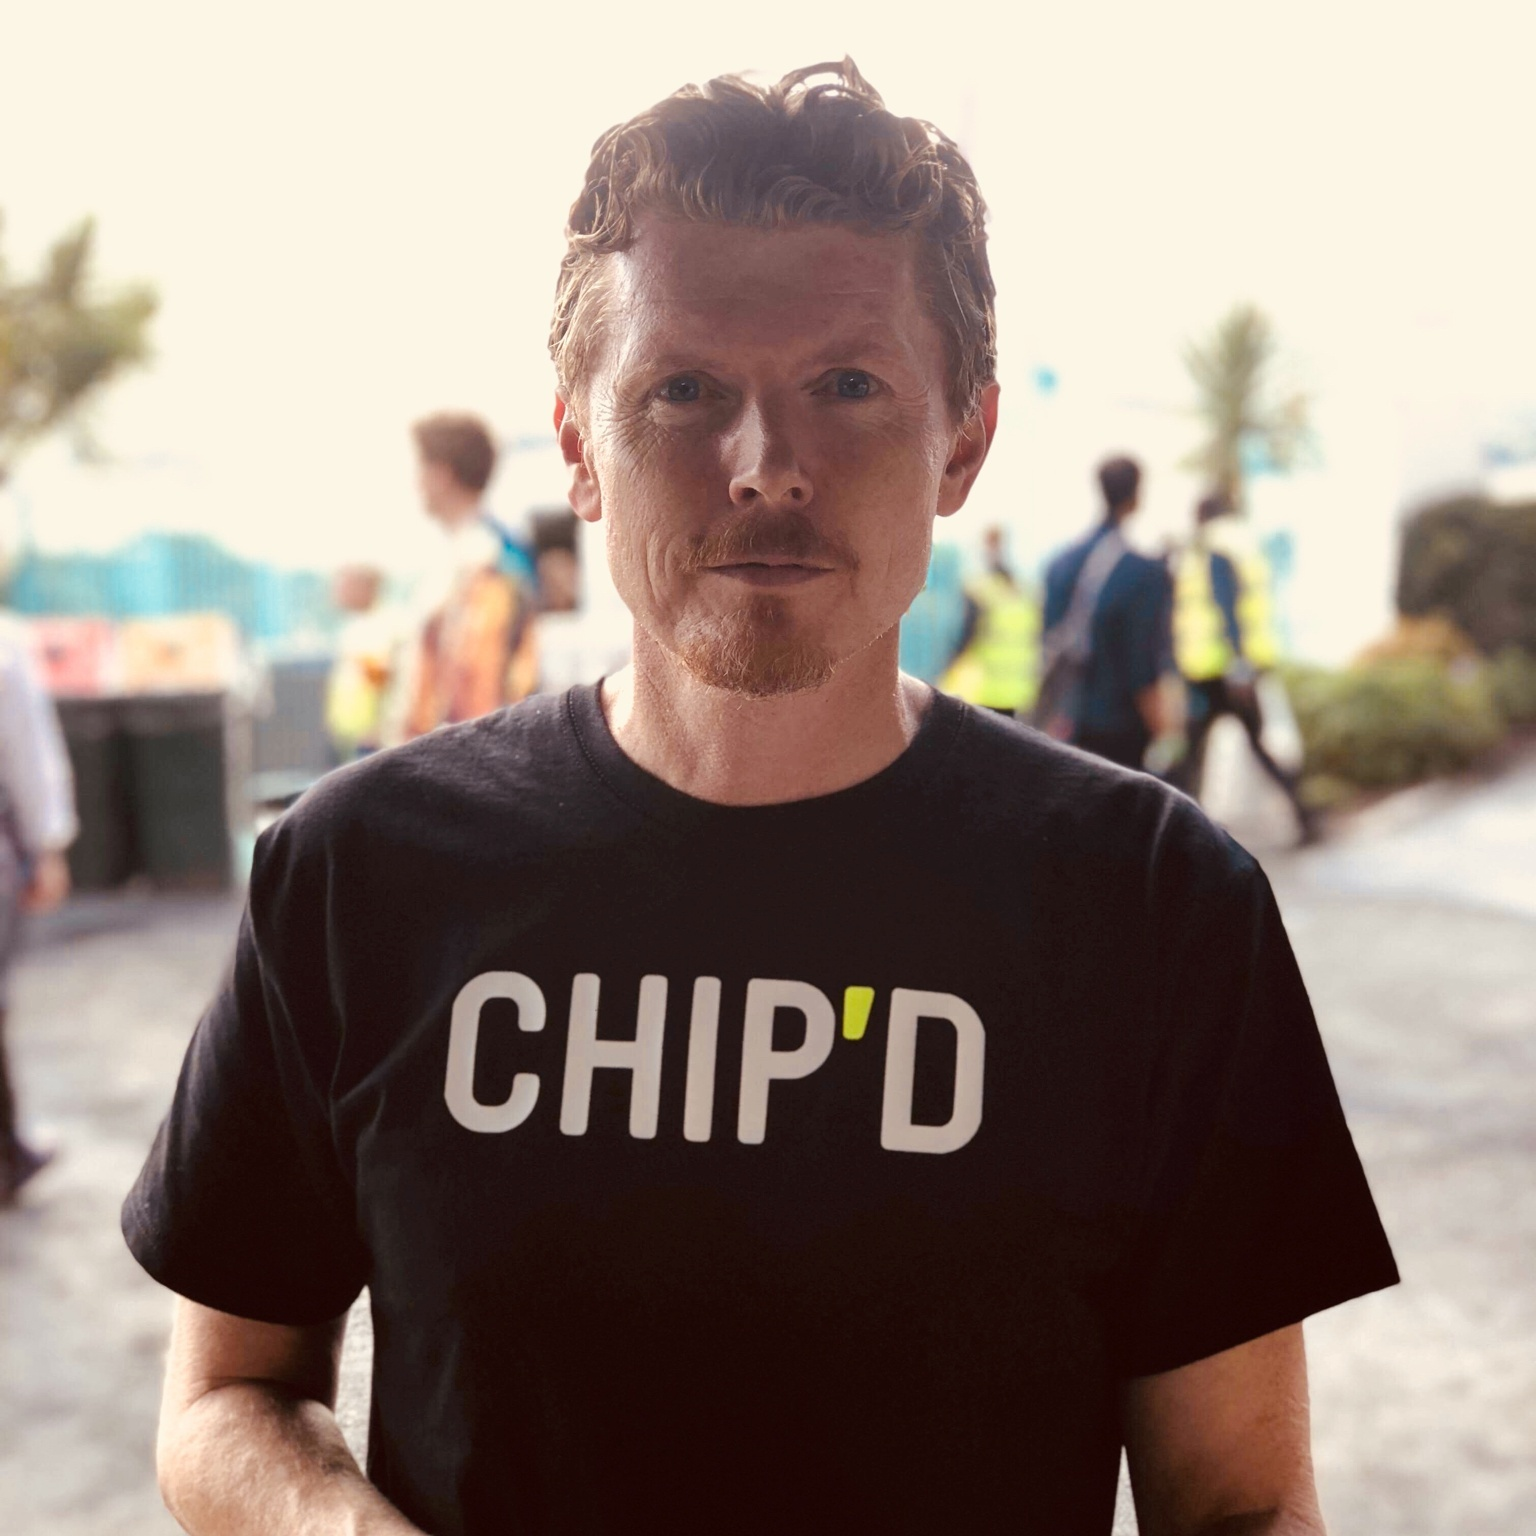 Andrew McKechnie, founder and creator of Chip'd